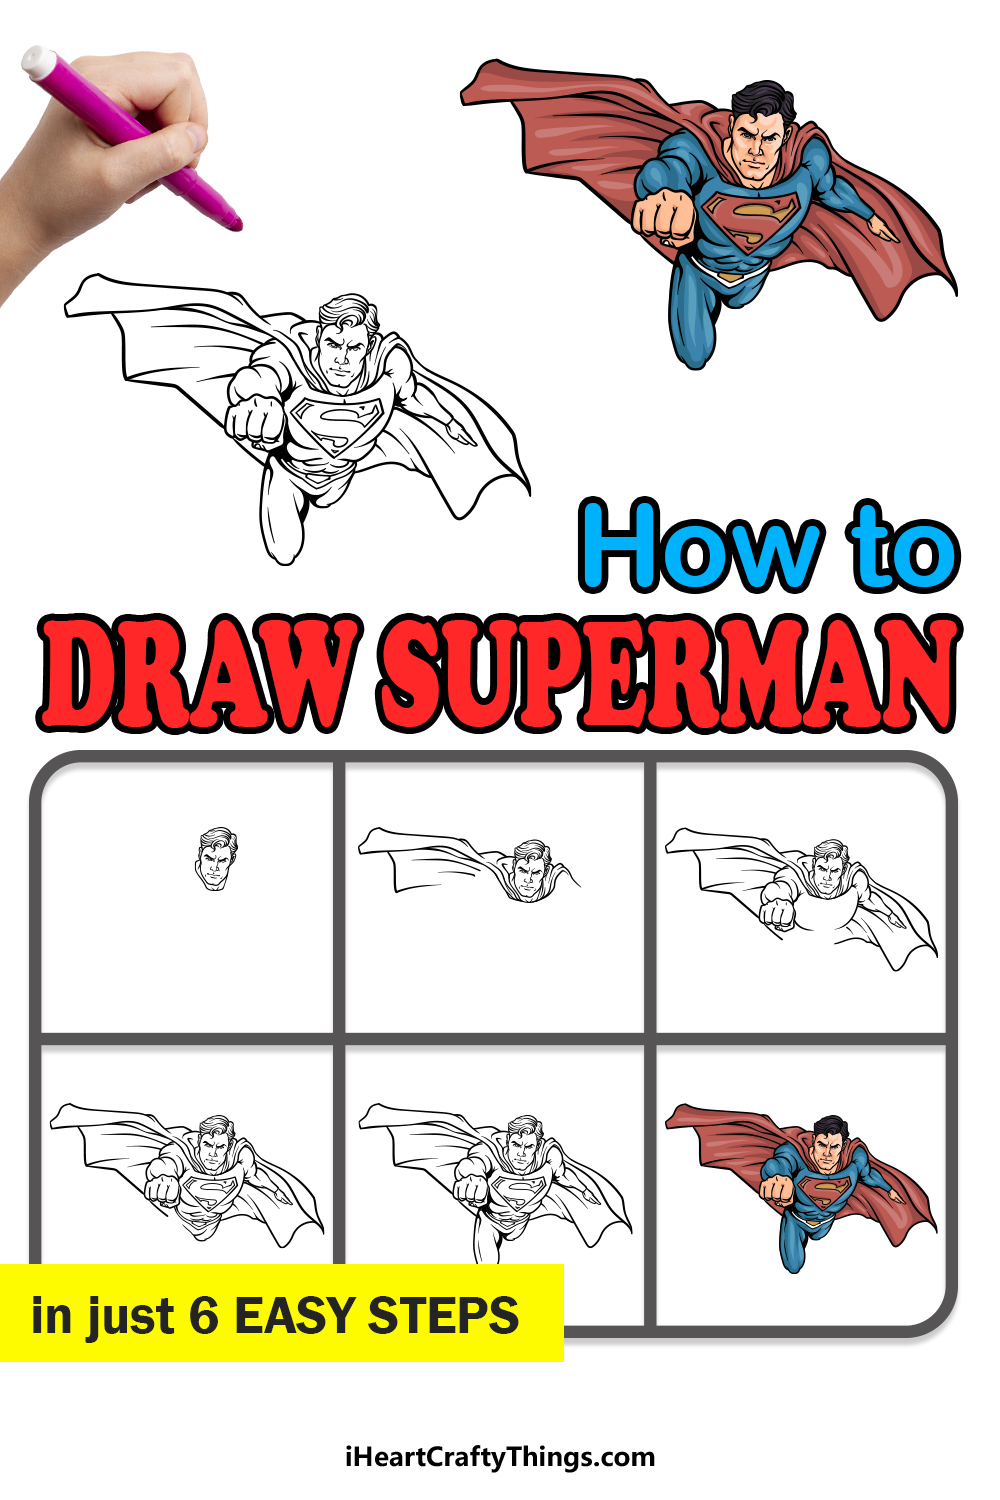 how to draw Superman in 6 easy steps